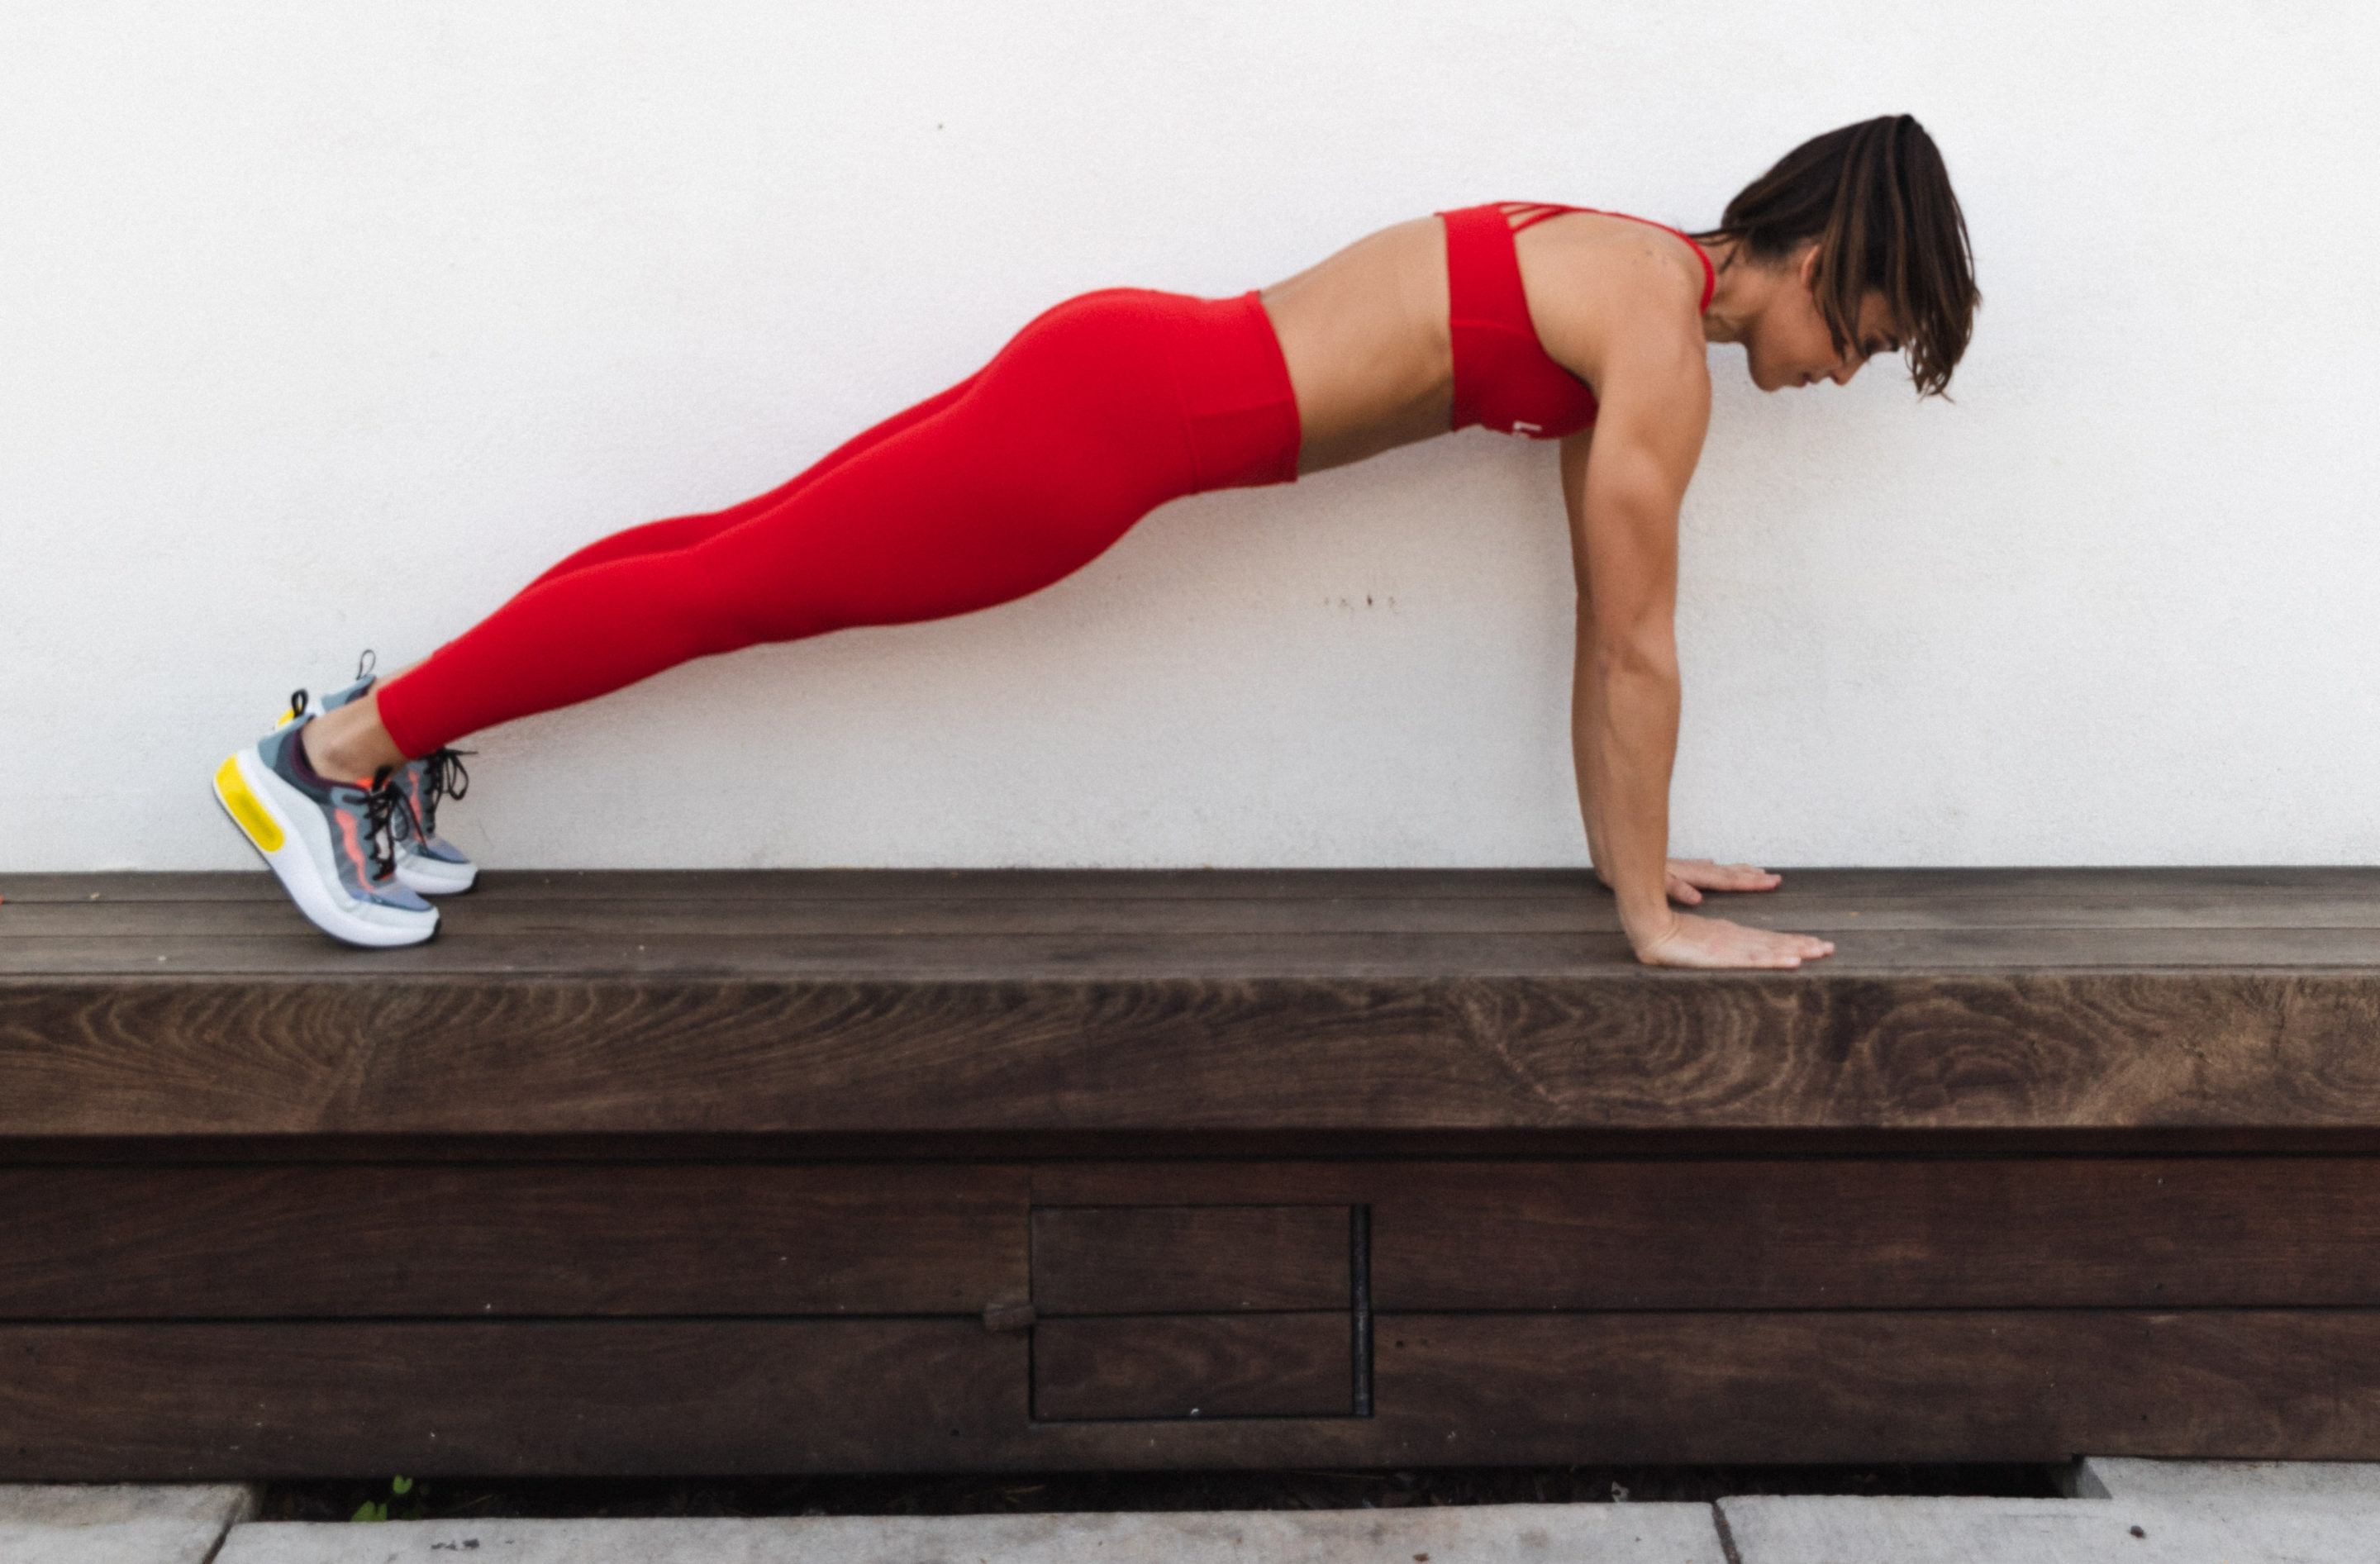 Thumbnail for Want to bump up the intensity of your core workout? Just add dumbbells